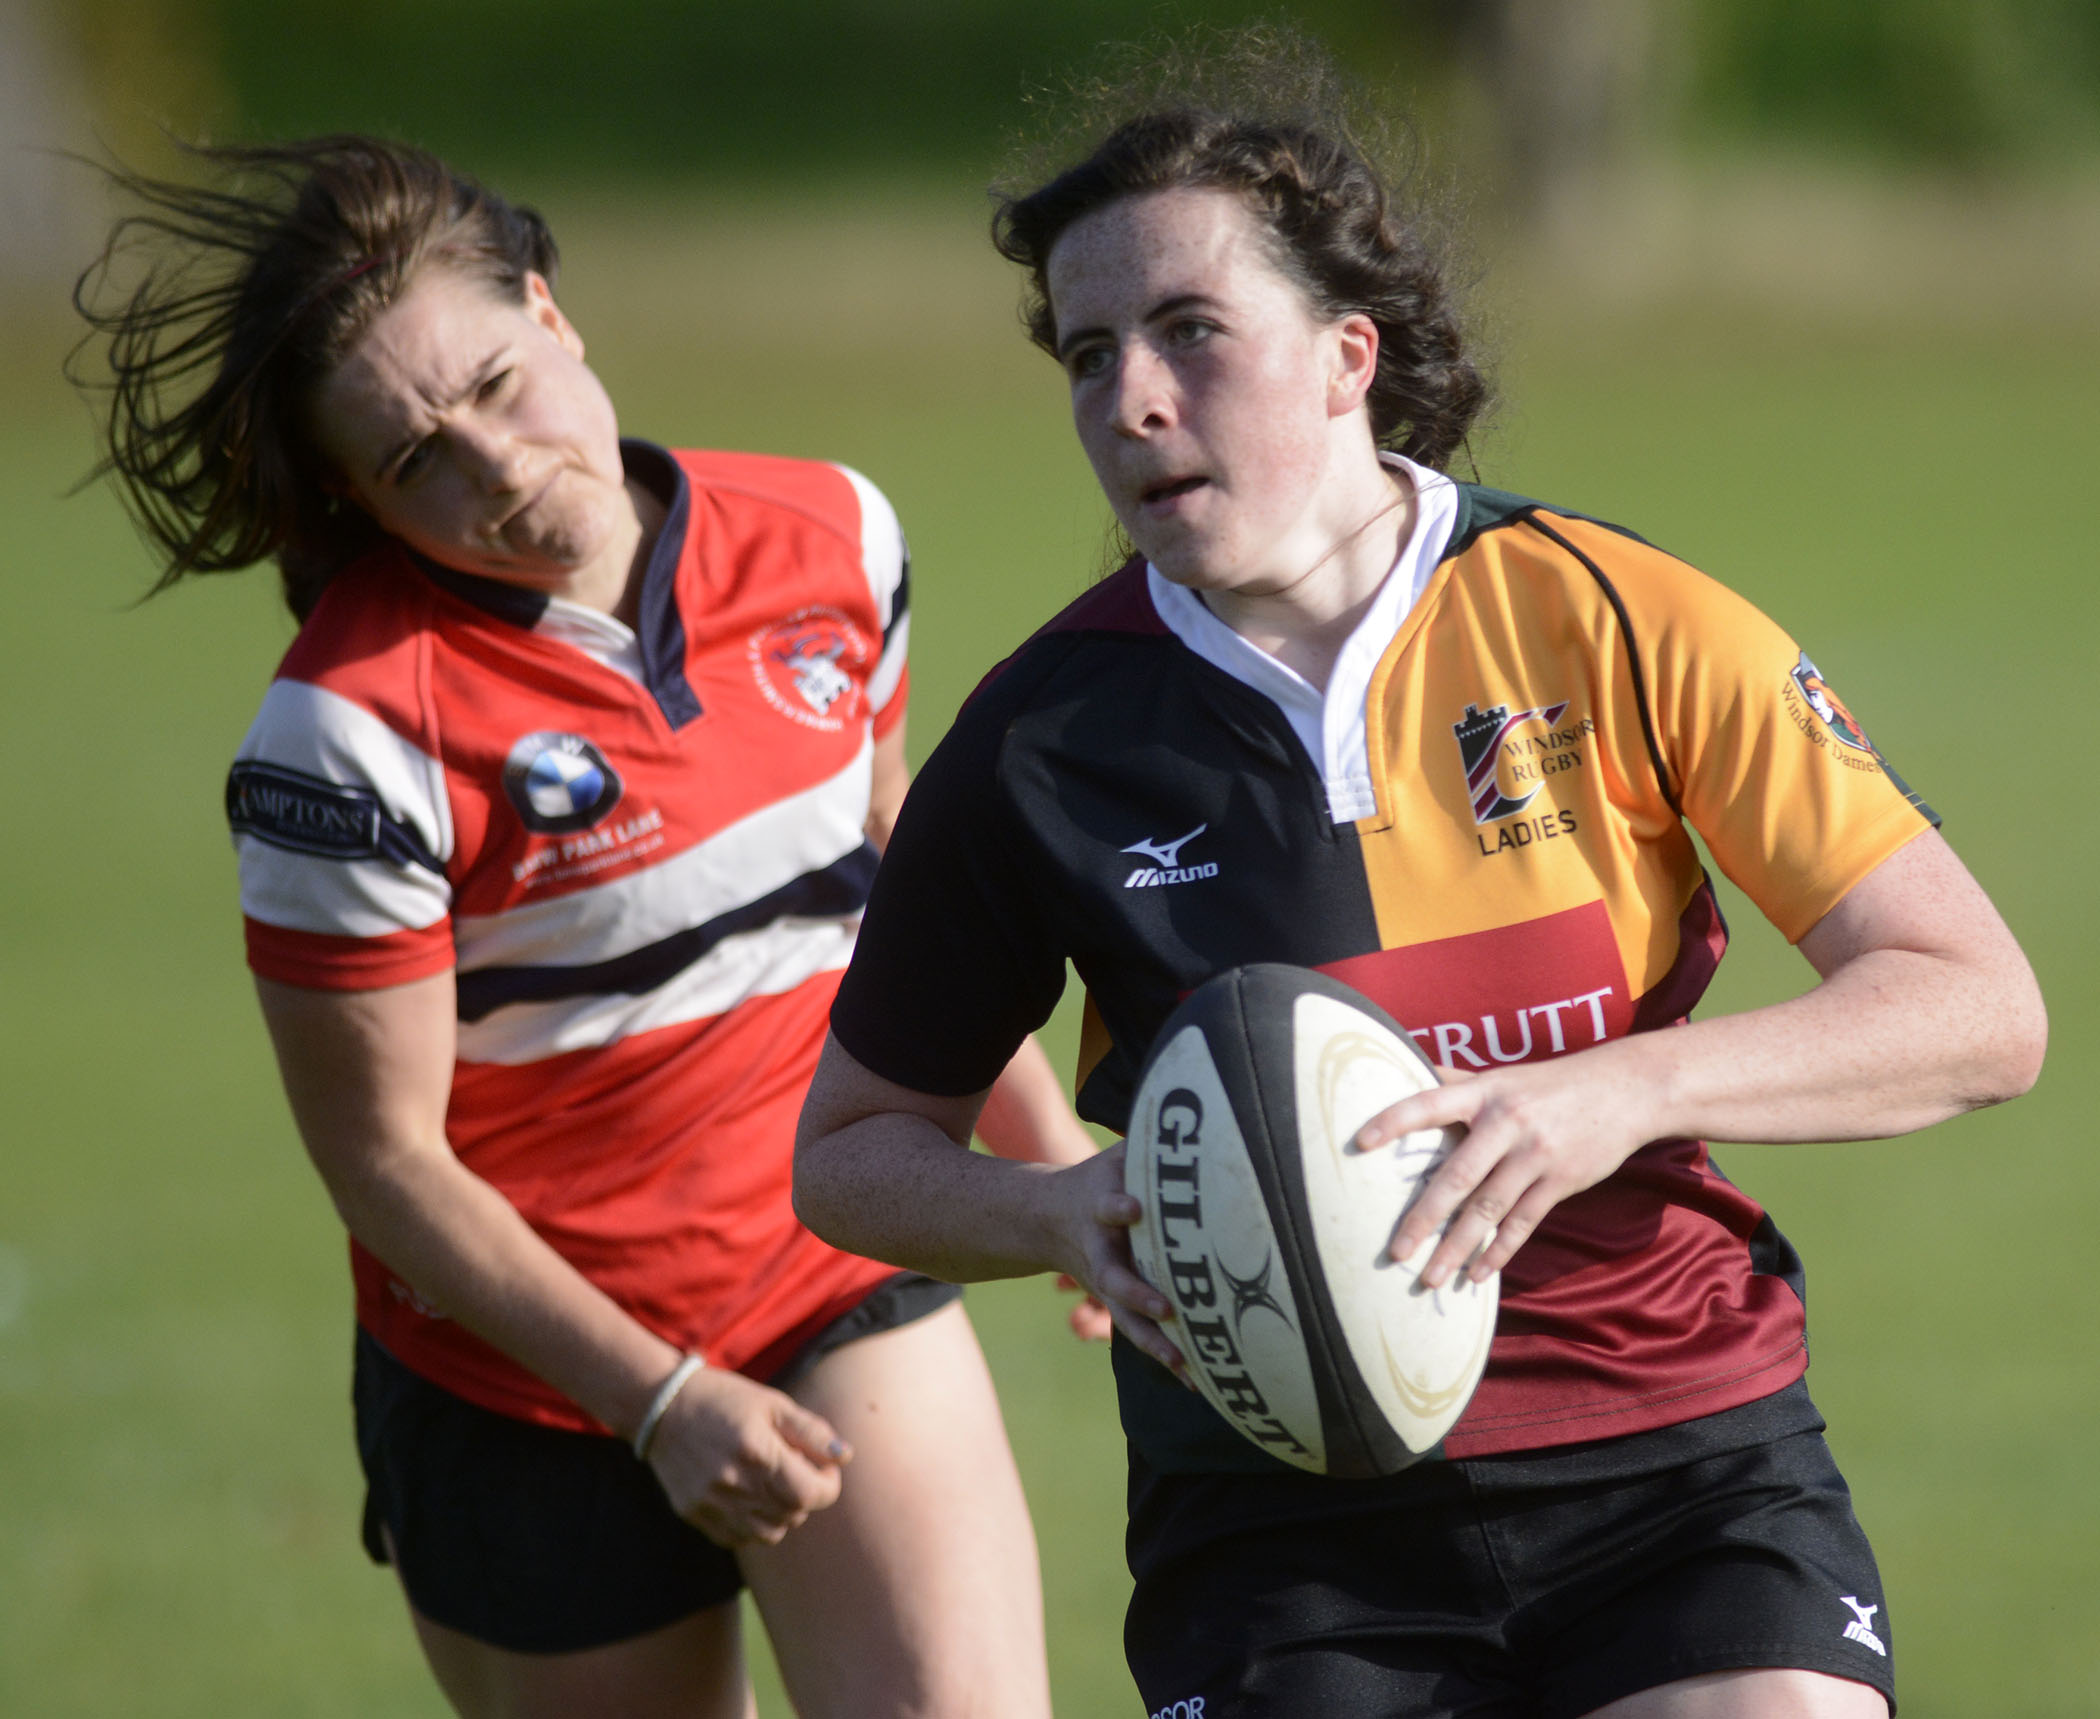 Windsor Dames (yellow and black) double try scorer Molly Horler sprints away from a chasing defender.